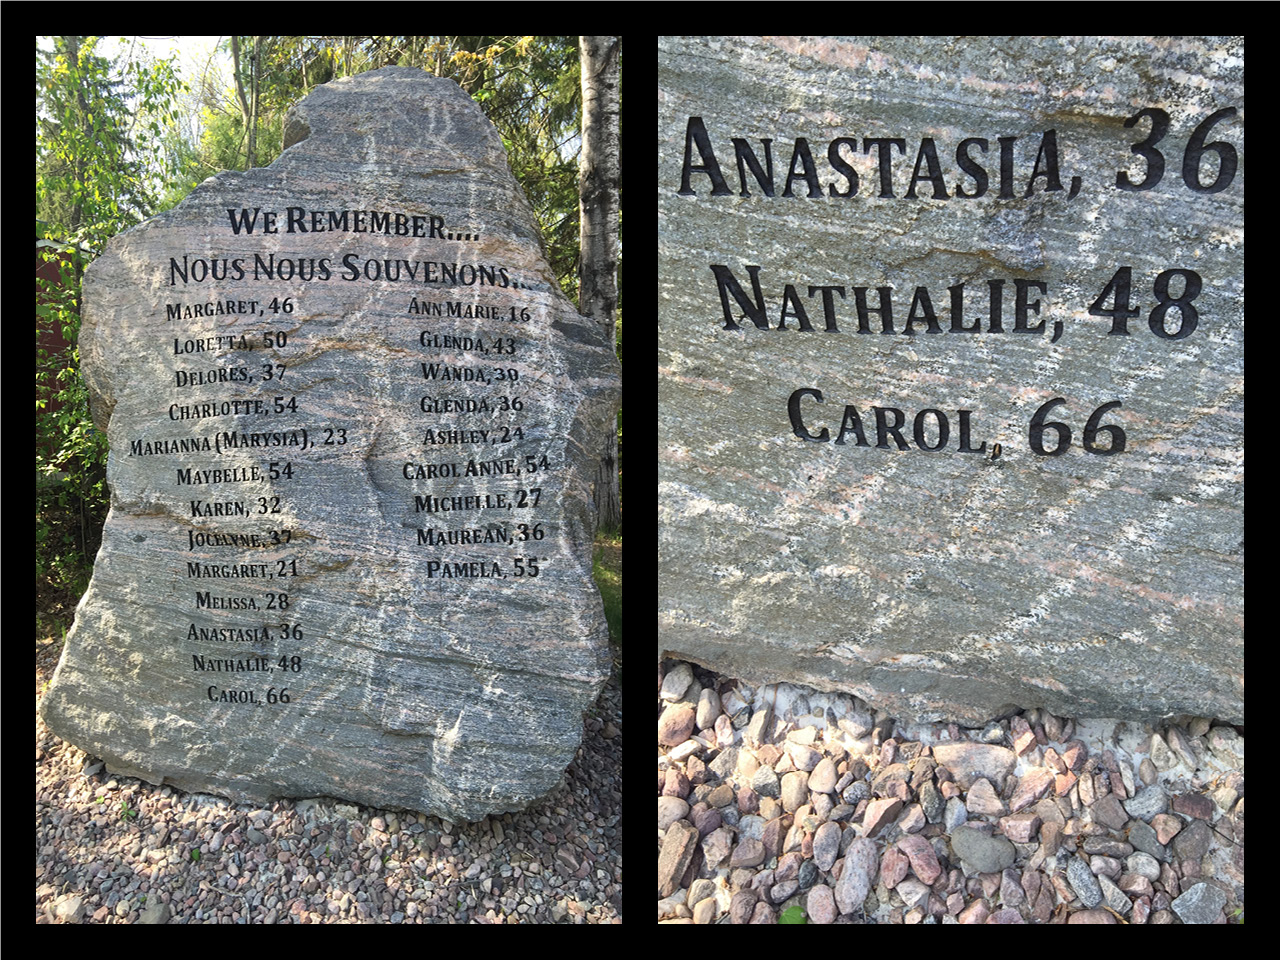 A monument erected in the memory of women killed by their partners in Renfrew County.